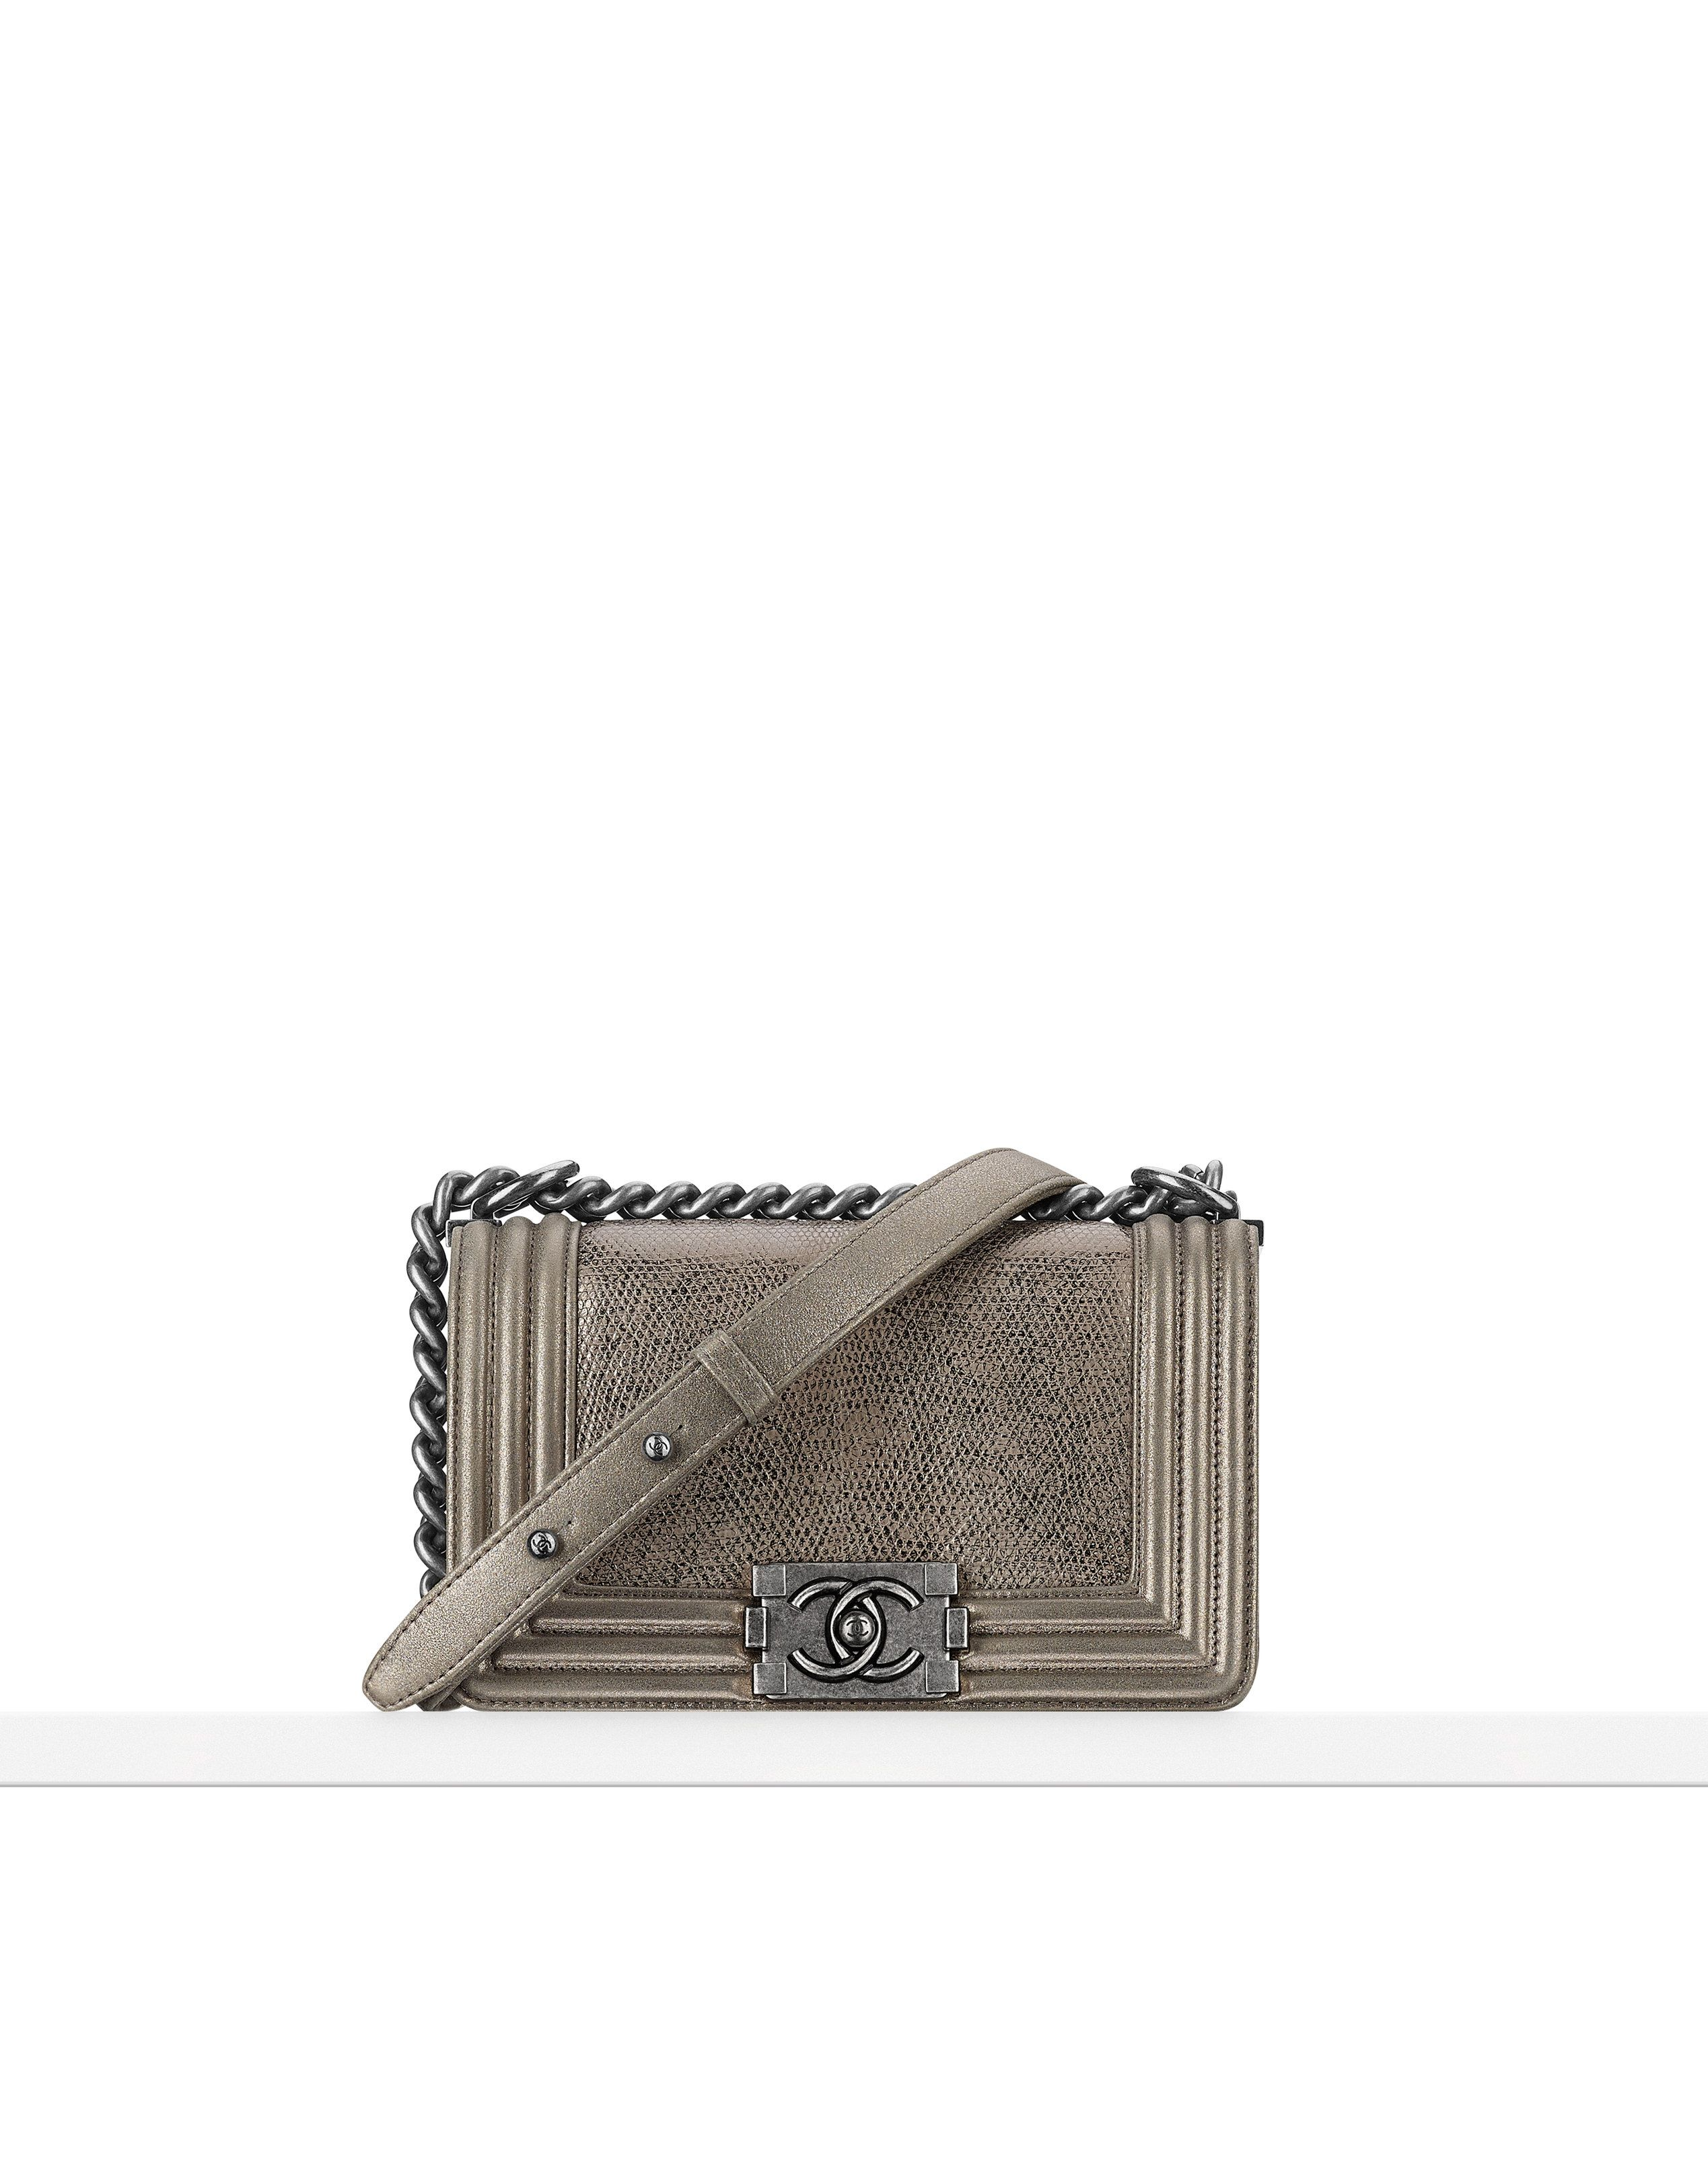 246303409808 Small lizard Boy CHANEL flap... - CHANEL | Bags, Bags and more Bags ...